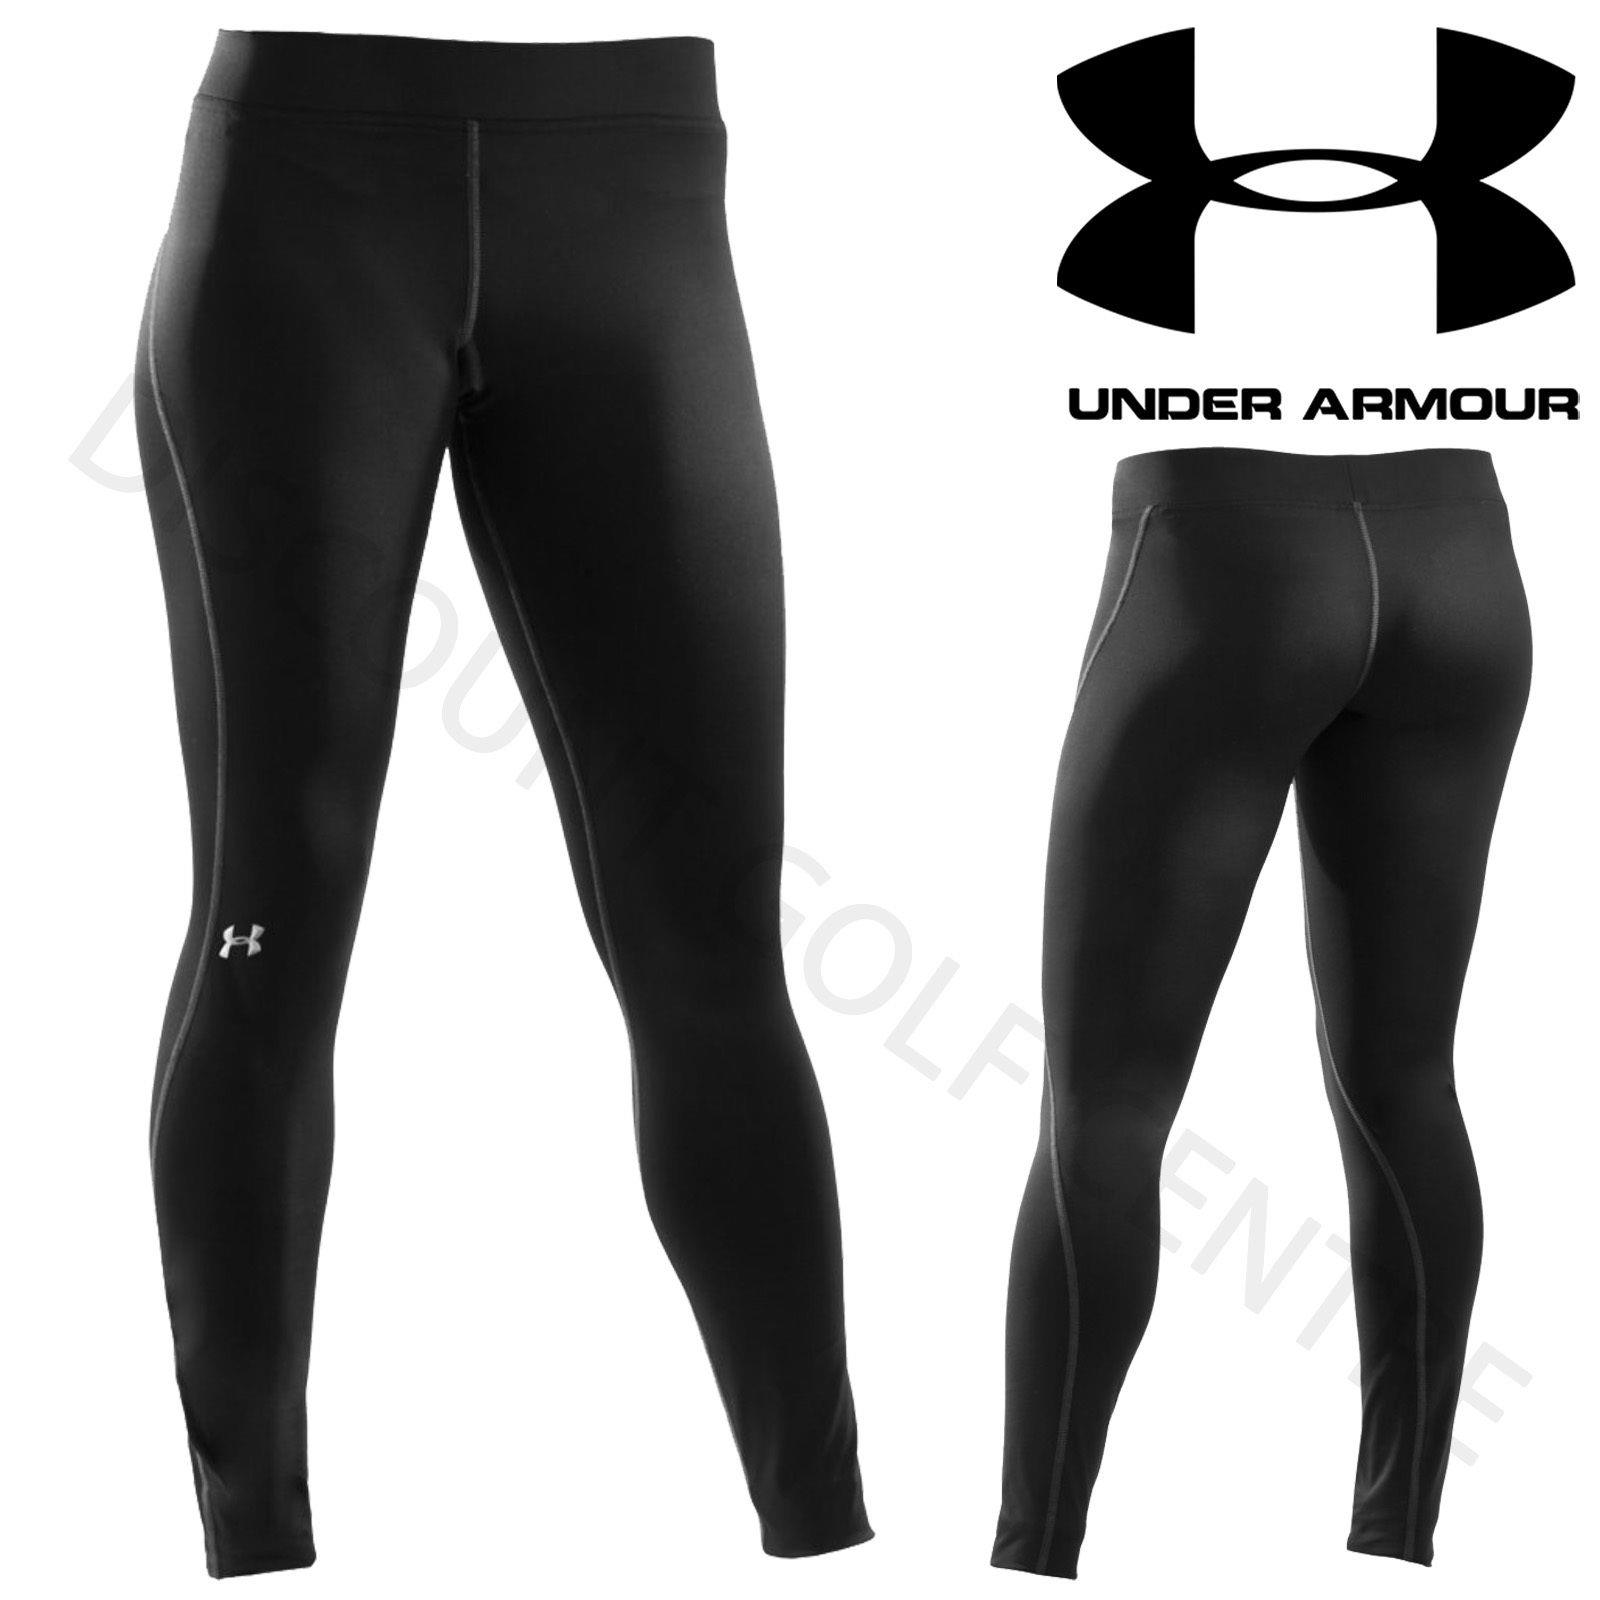 Under Armour Women's Authentic ColdGear Compression Ladies Leggings 1250277